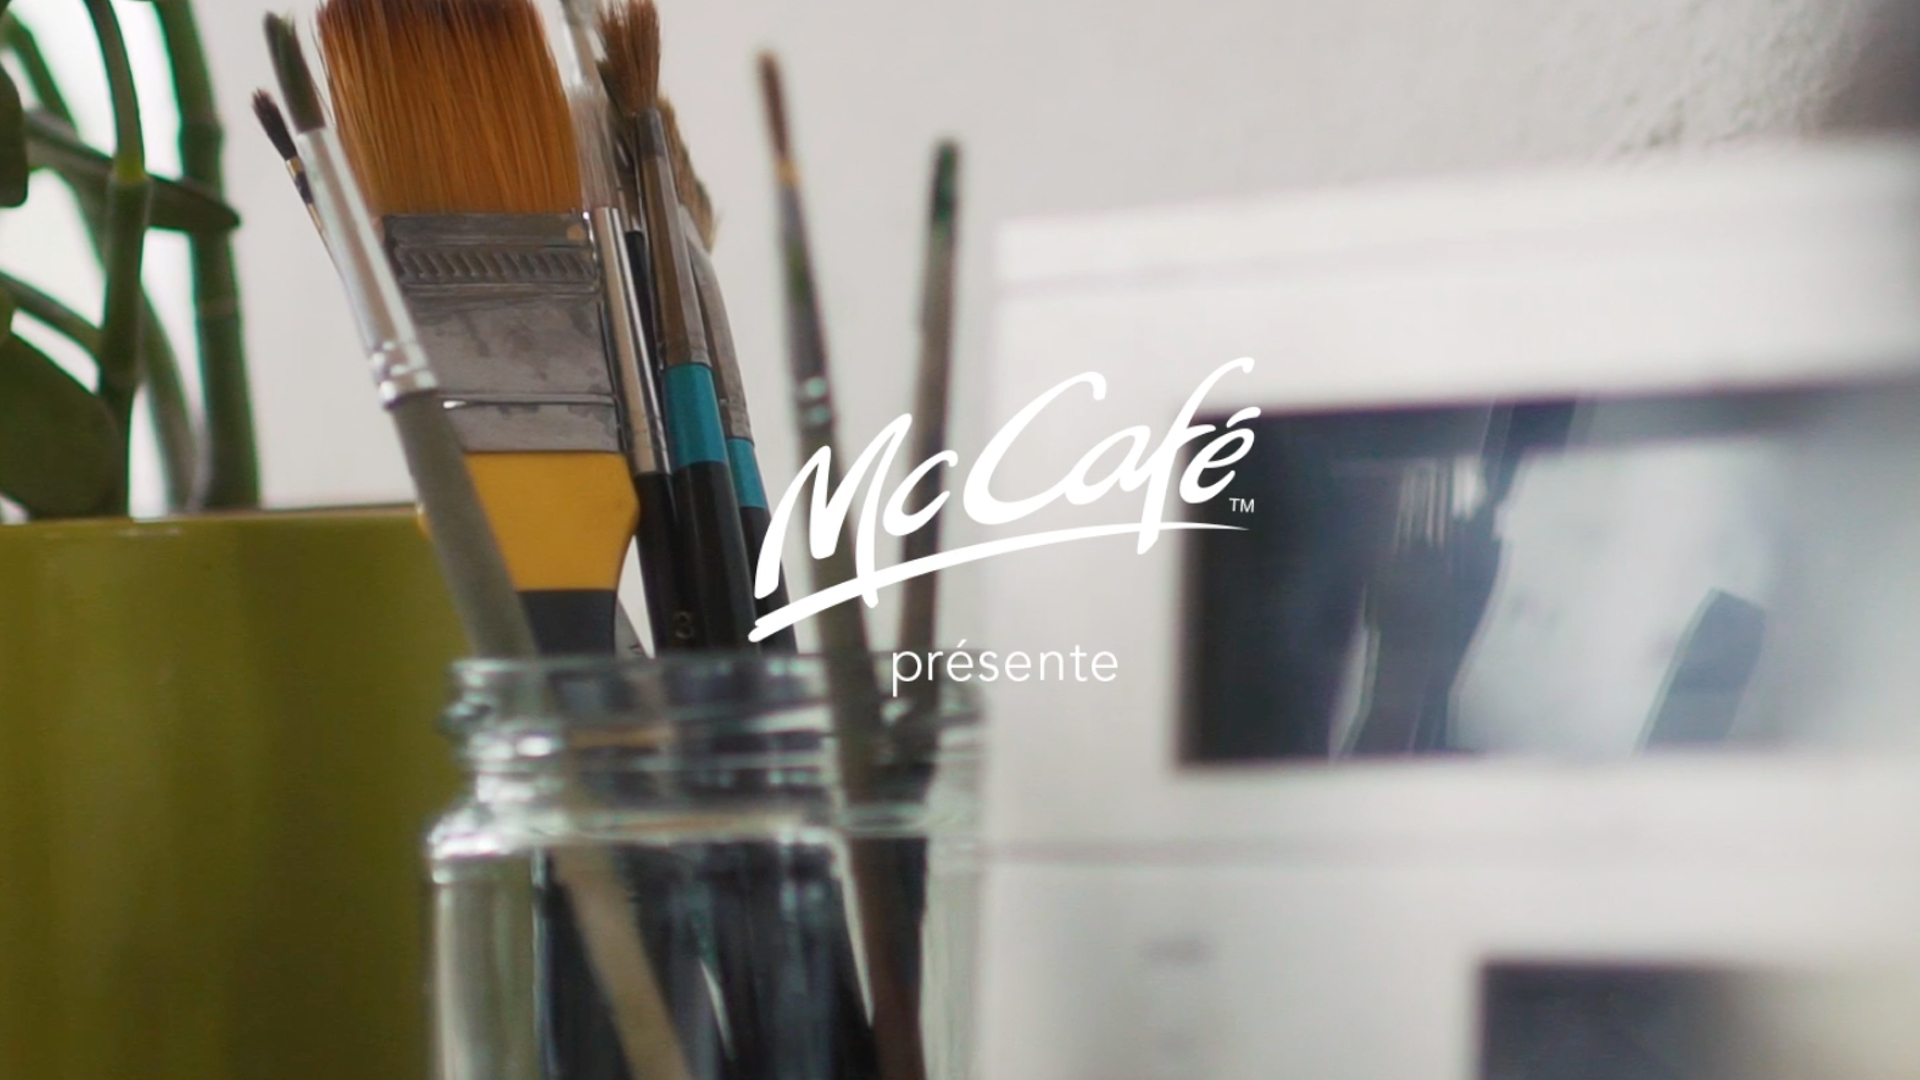 Filmsbyben works with Paris Agency for McDonalds McCafe image